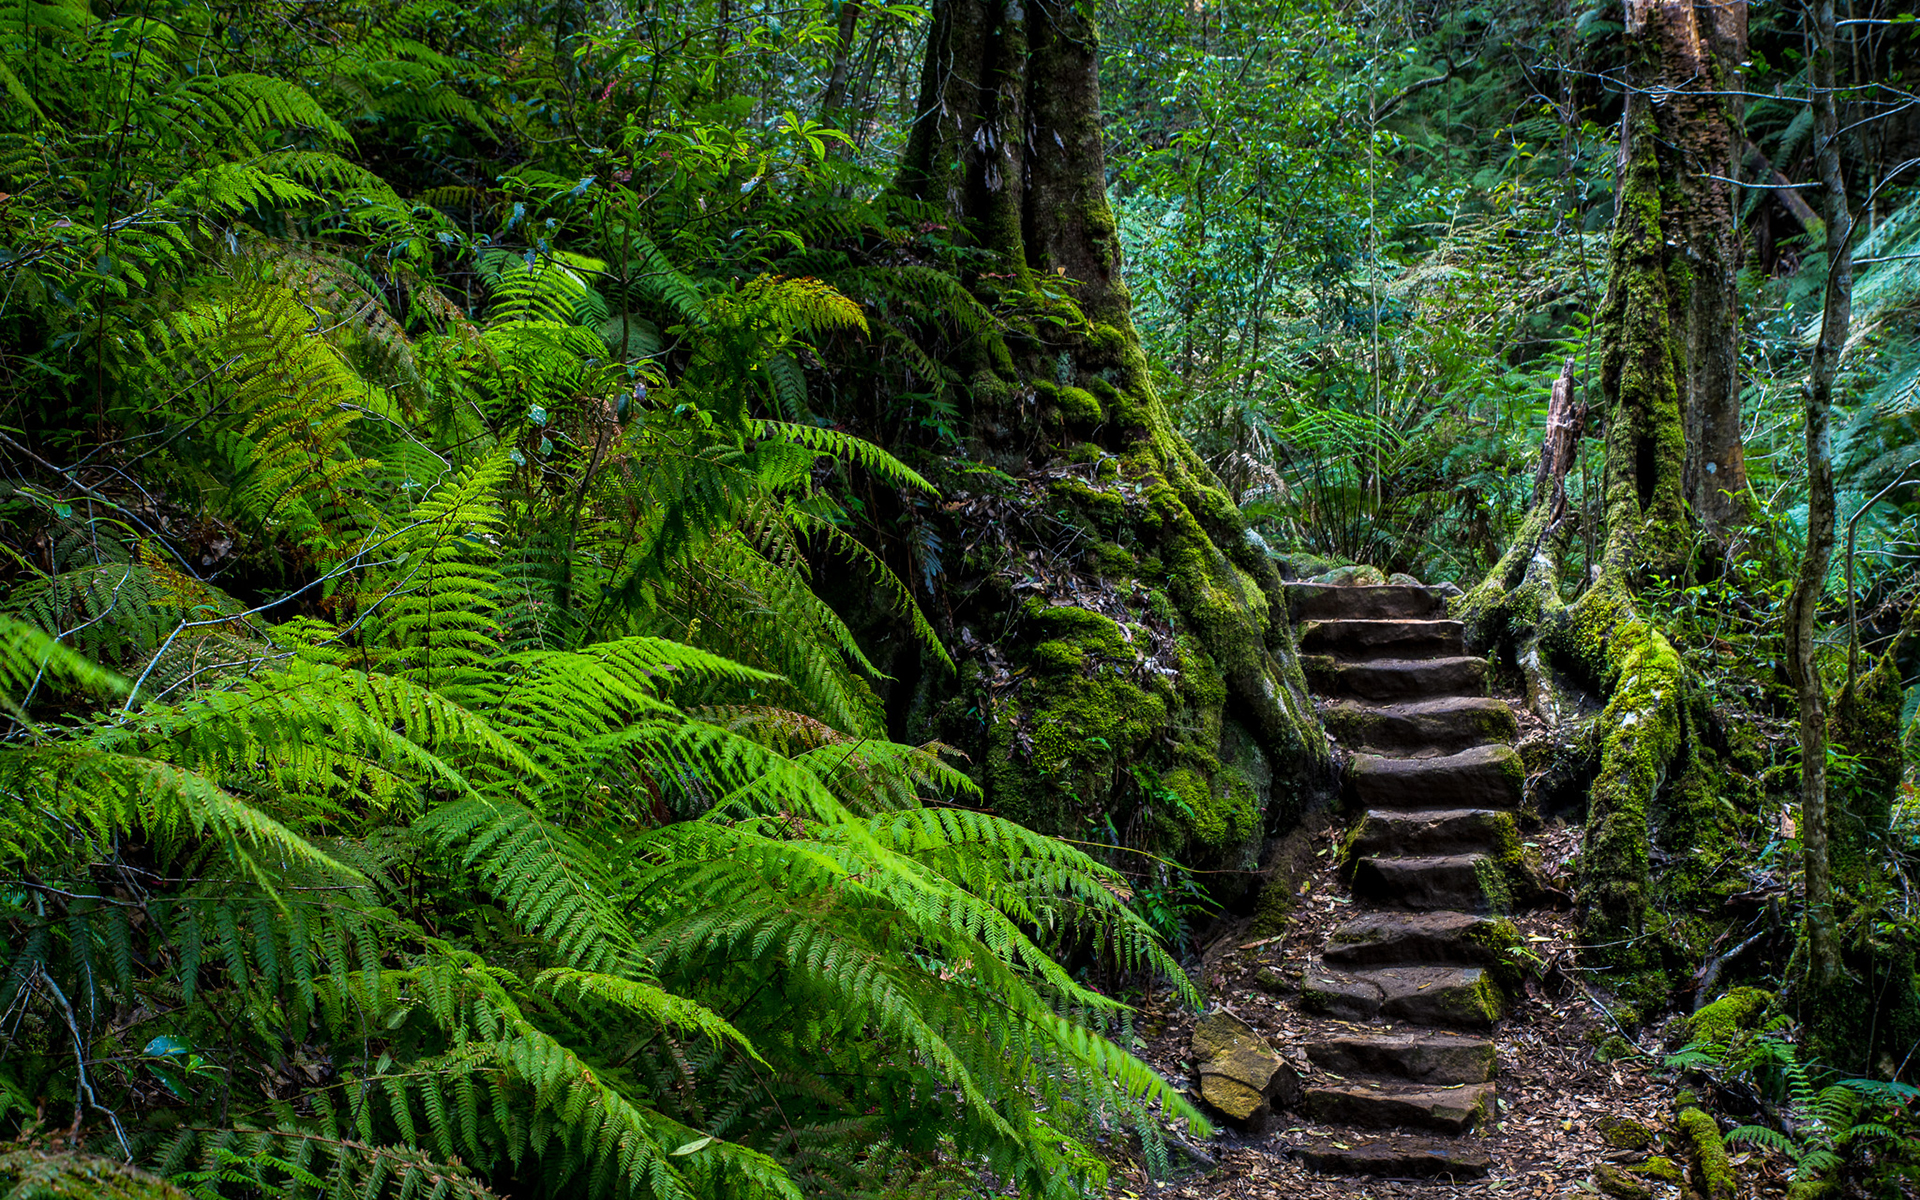 stone steps in tropical forest hd wallpaper background